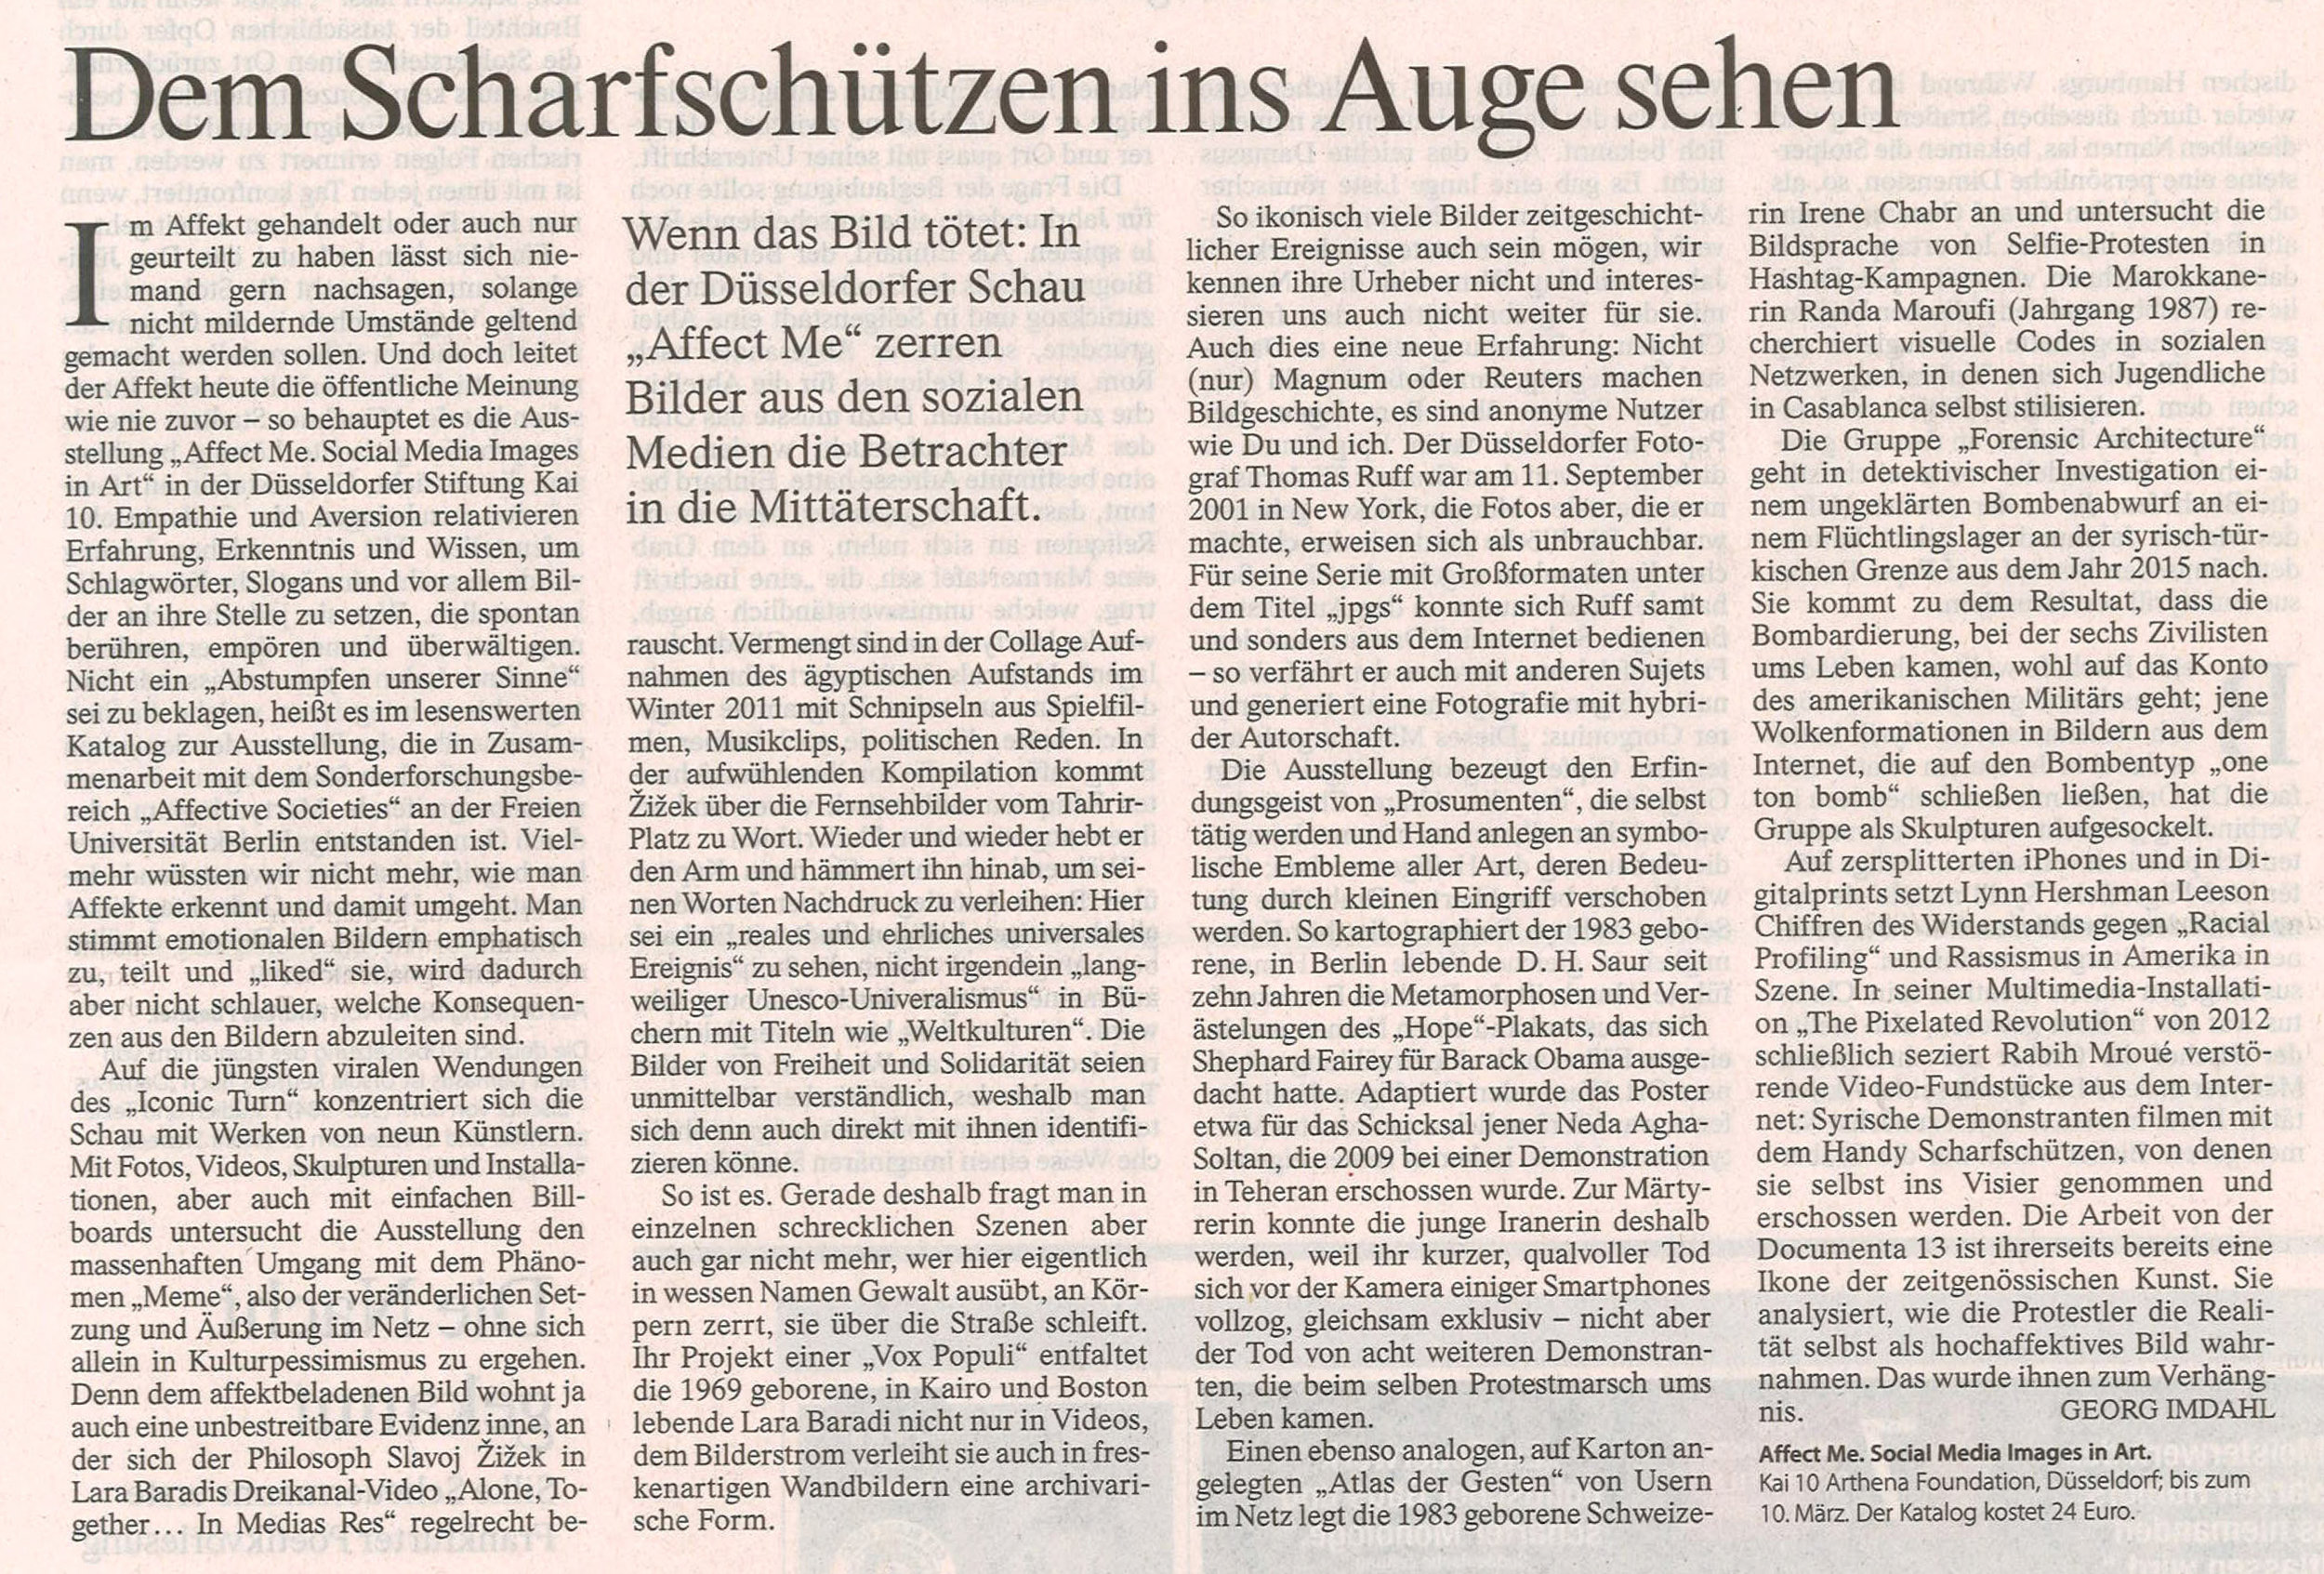 Review of the exhibition 'Affect Me', KAI 10, Arthena Foundation, Dusseldorf, Germany, in the daily newspaper 'Frankfurter Allgemeine Zeitung' by Georg Imdahl, January 2018